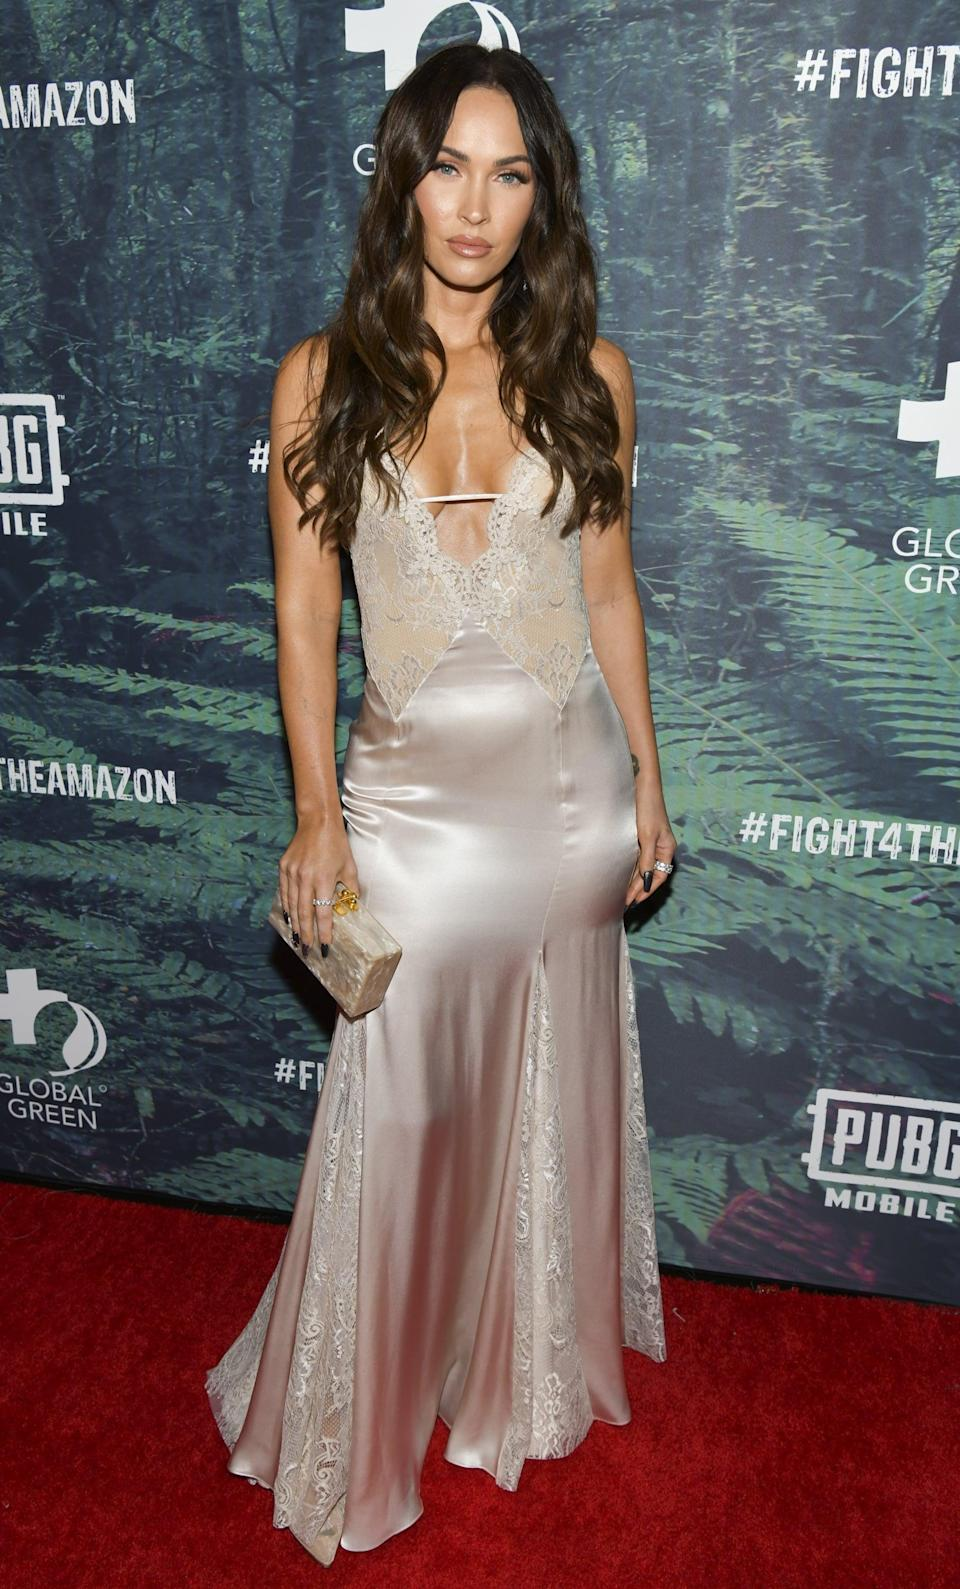 <p>She made an appearance at the 2019 #Fight4TheAmazon event in Hollywood wearing a lingerie-like Blumarine gown. </p>